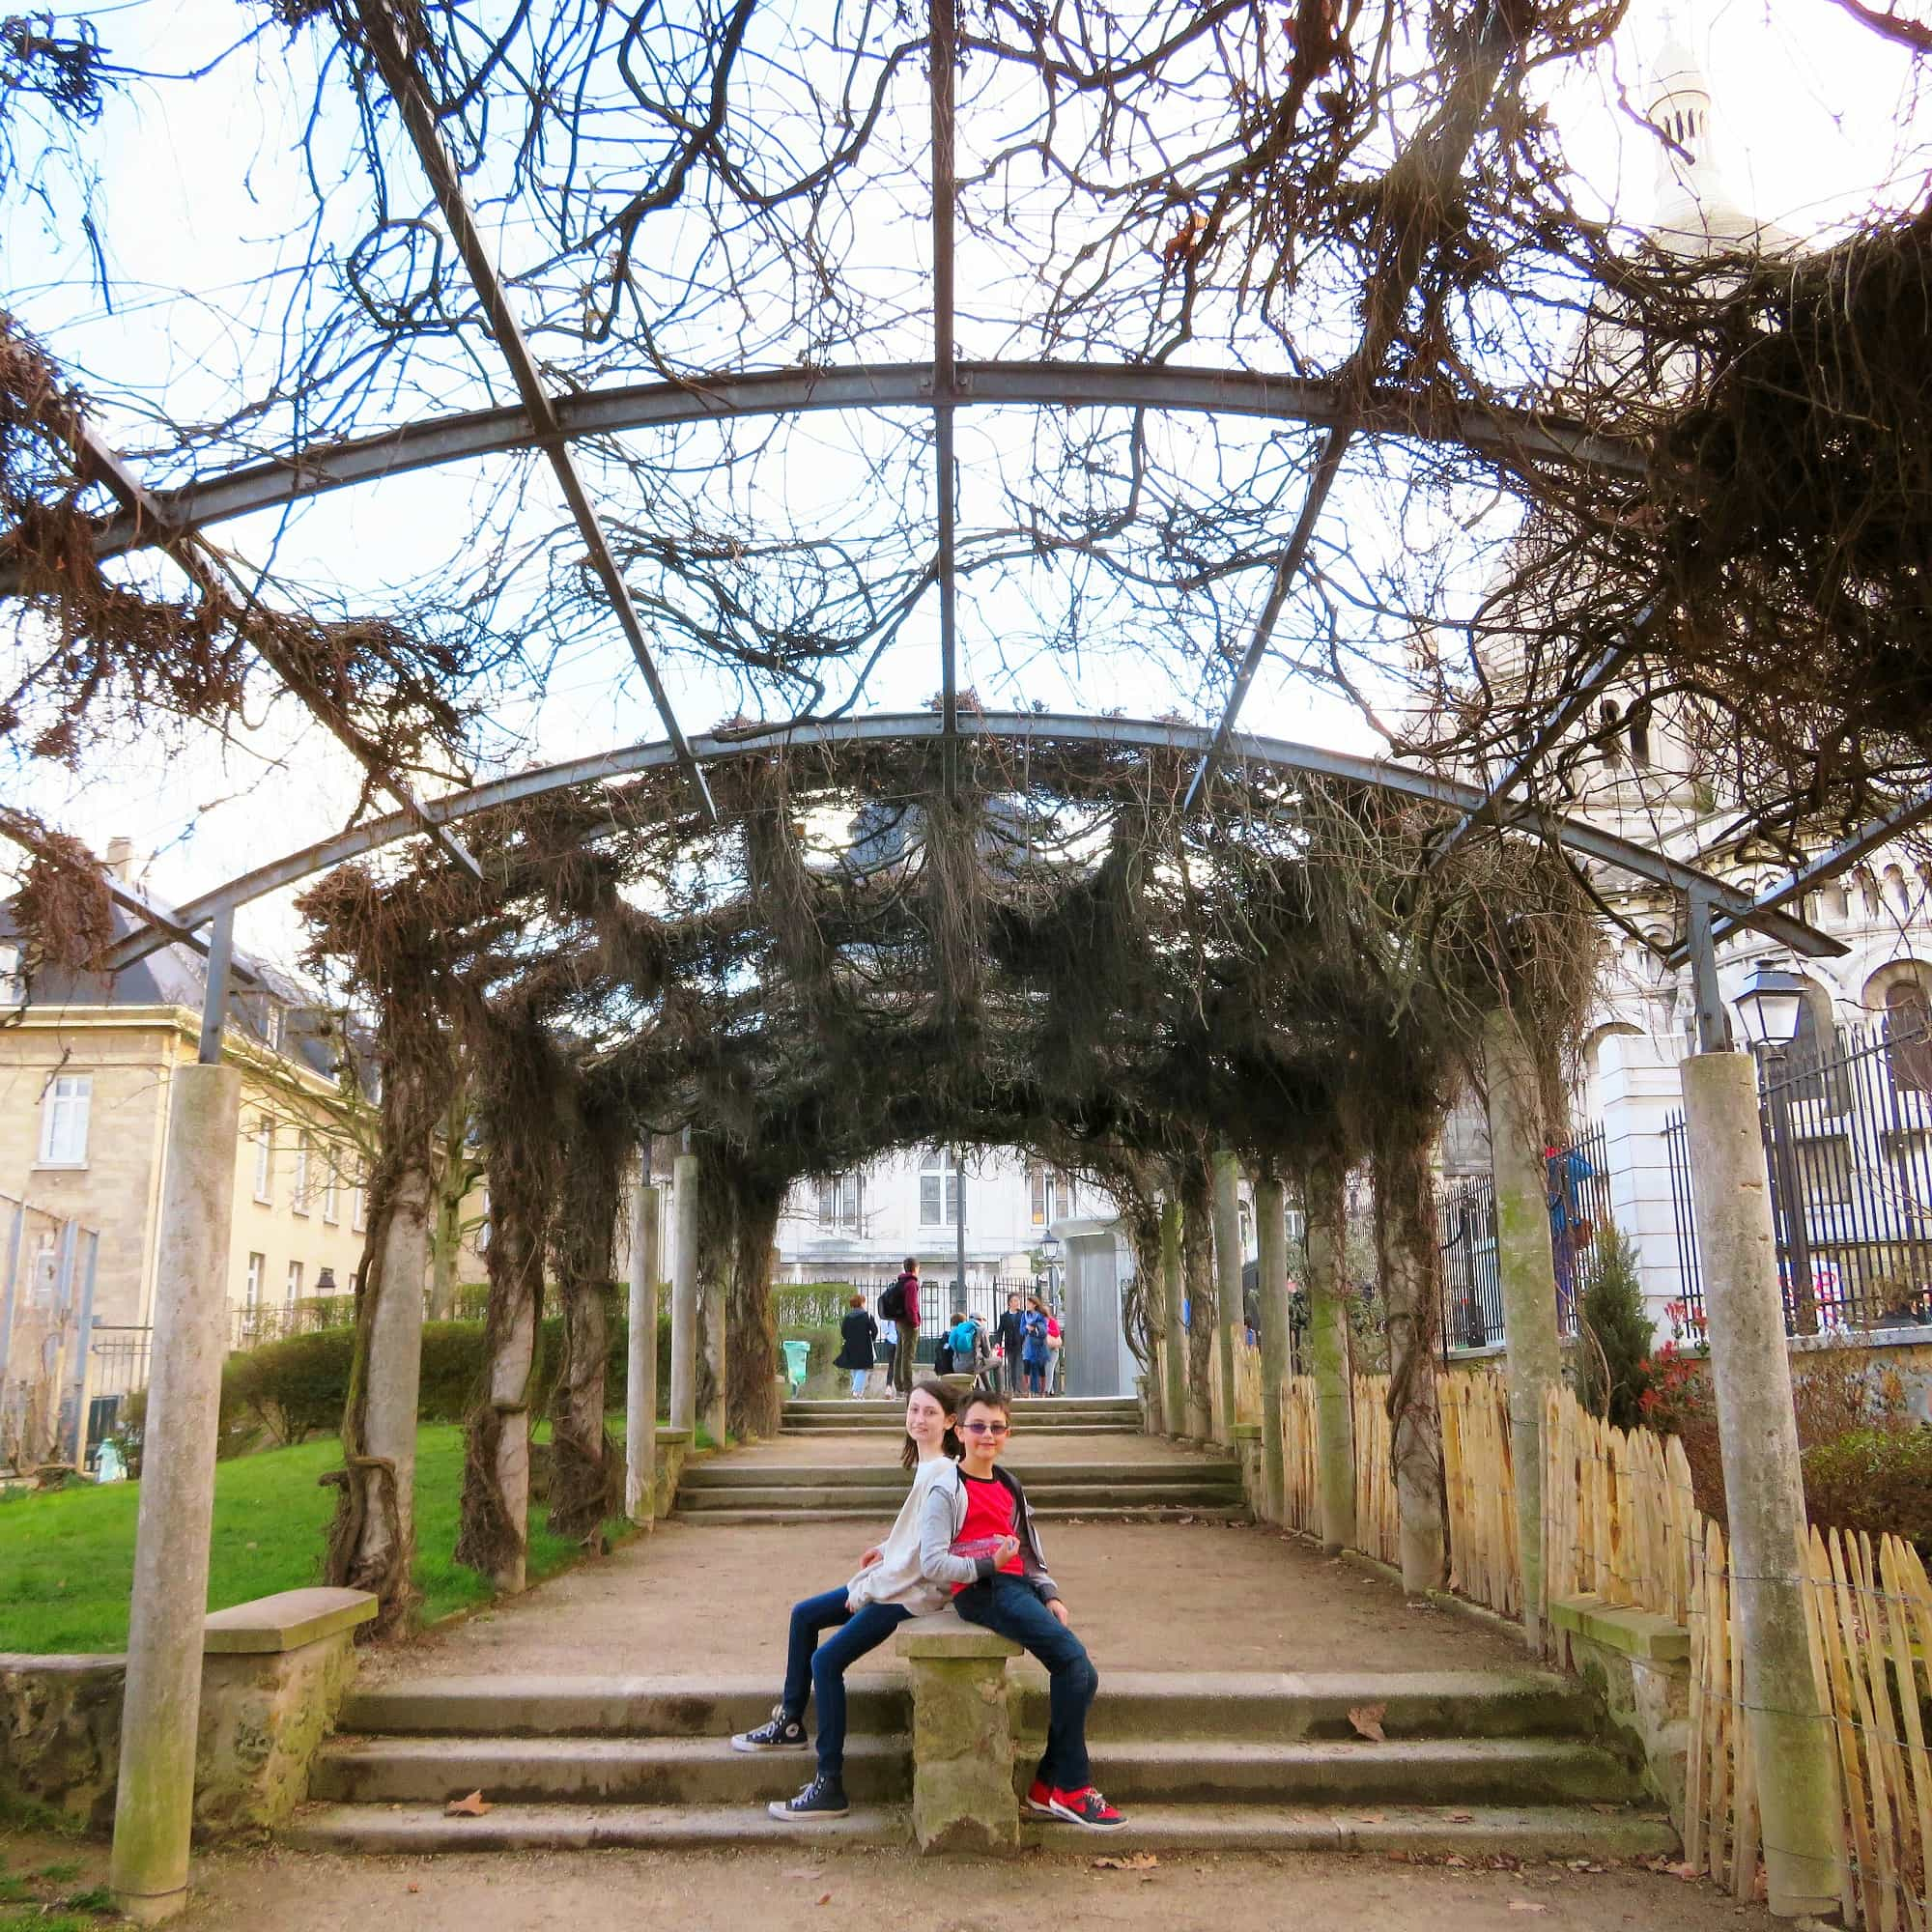 Parc de la Turlure in Montmartre, Paris with kids